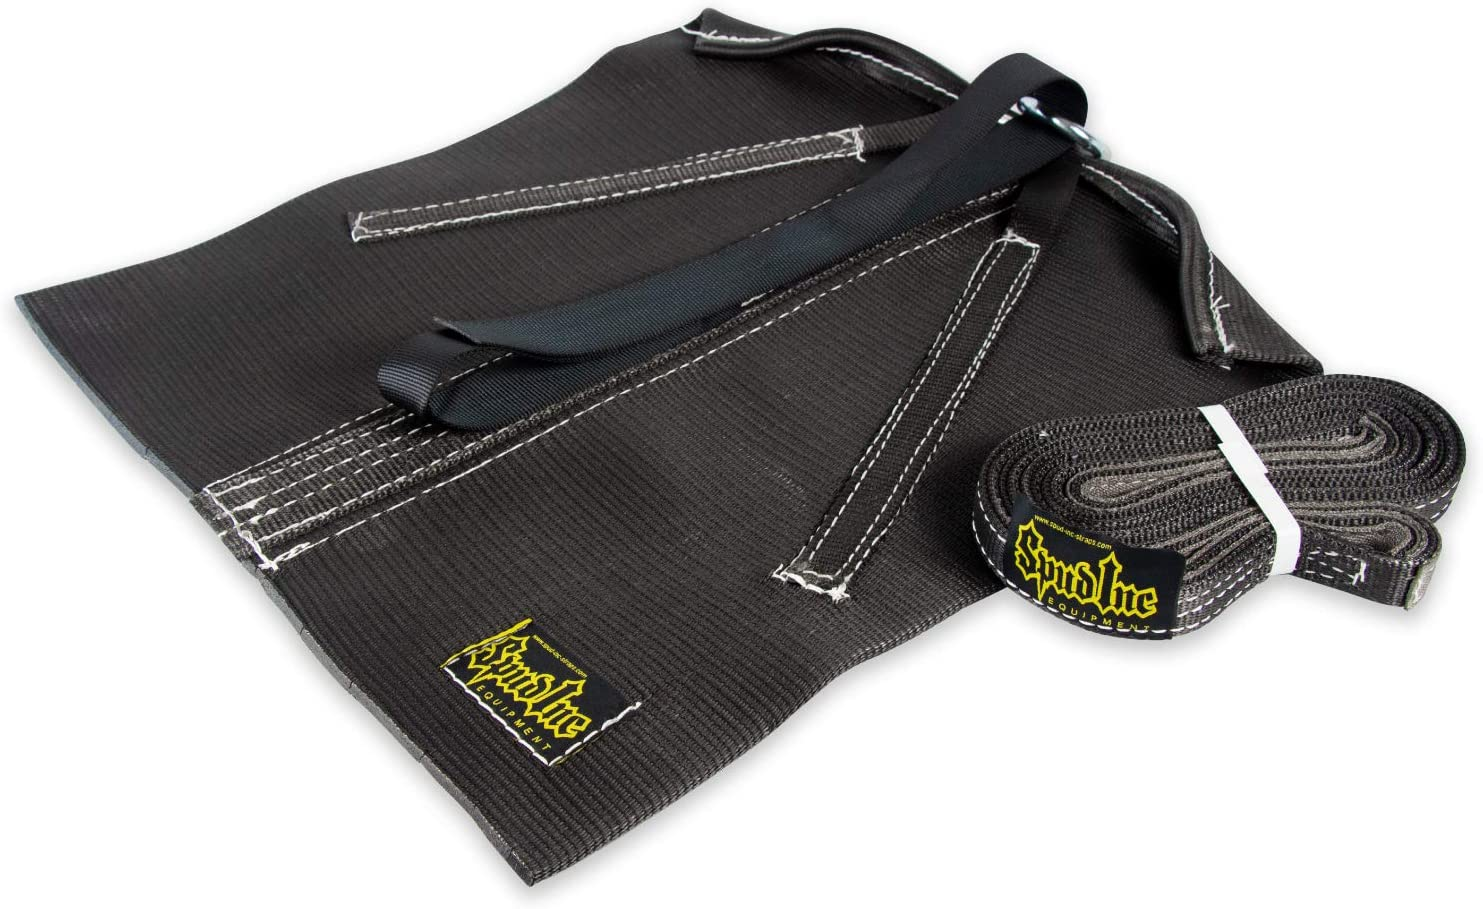 Inc Magic Carpet Sled with Strap Attachment Sewn in Spud